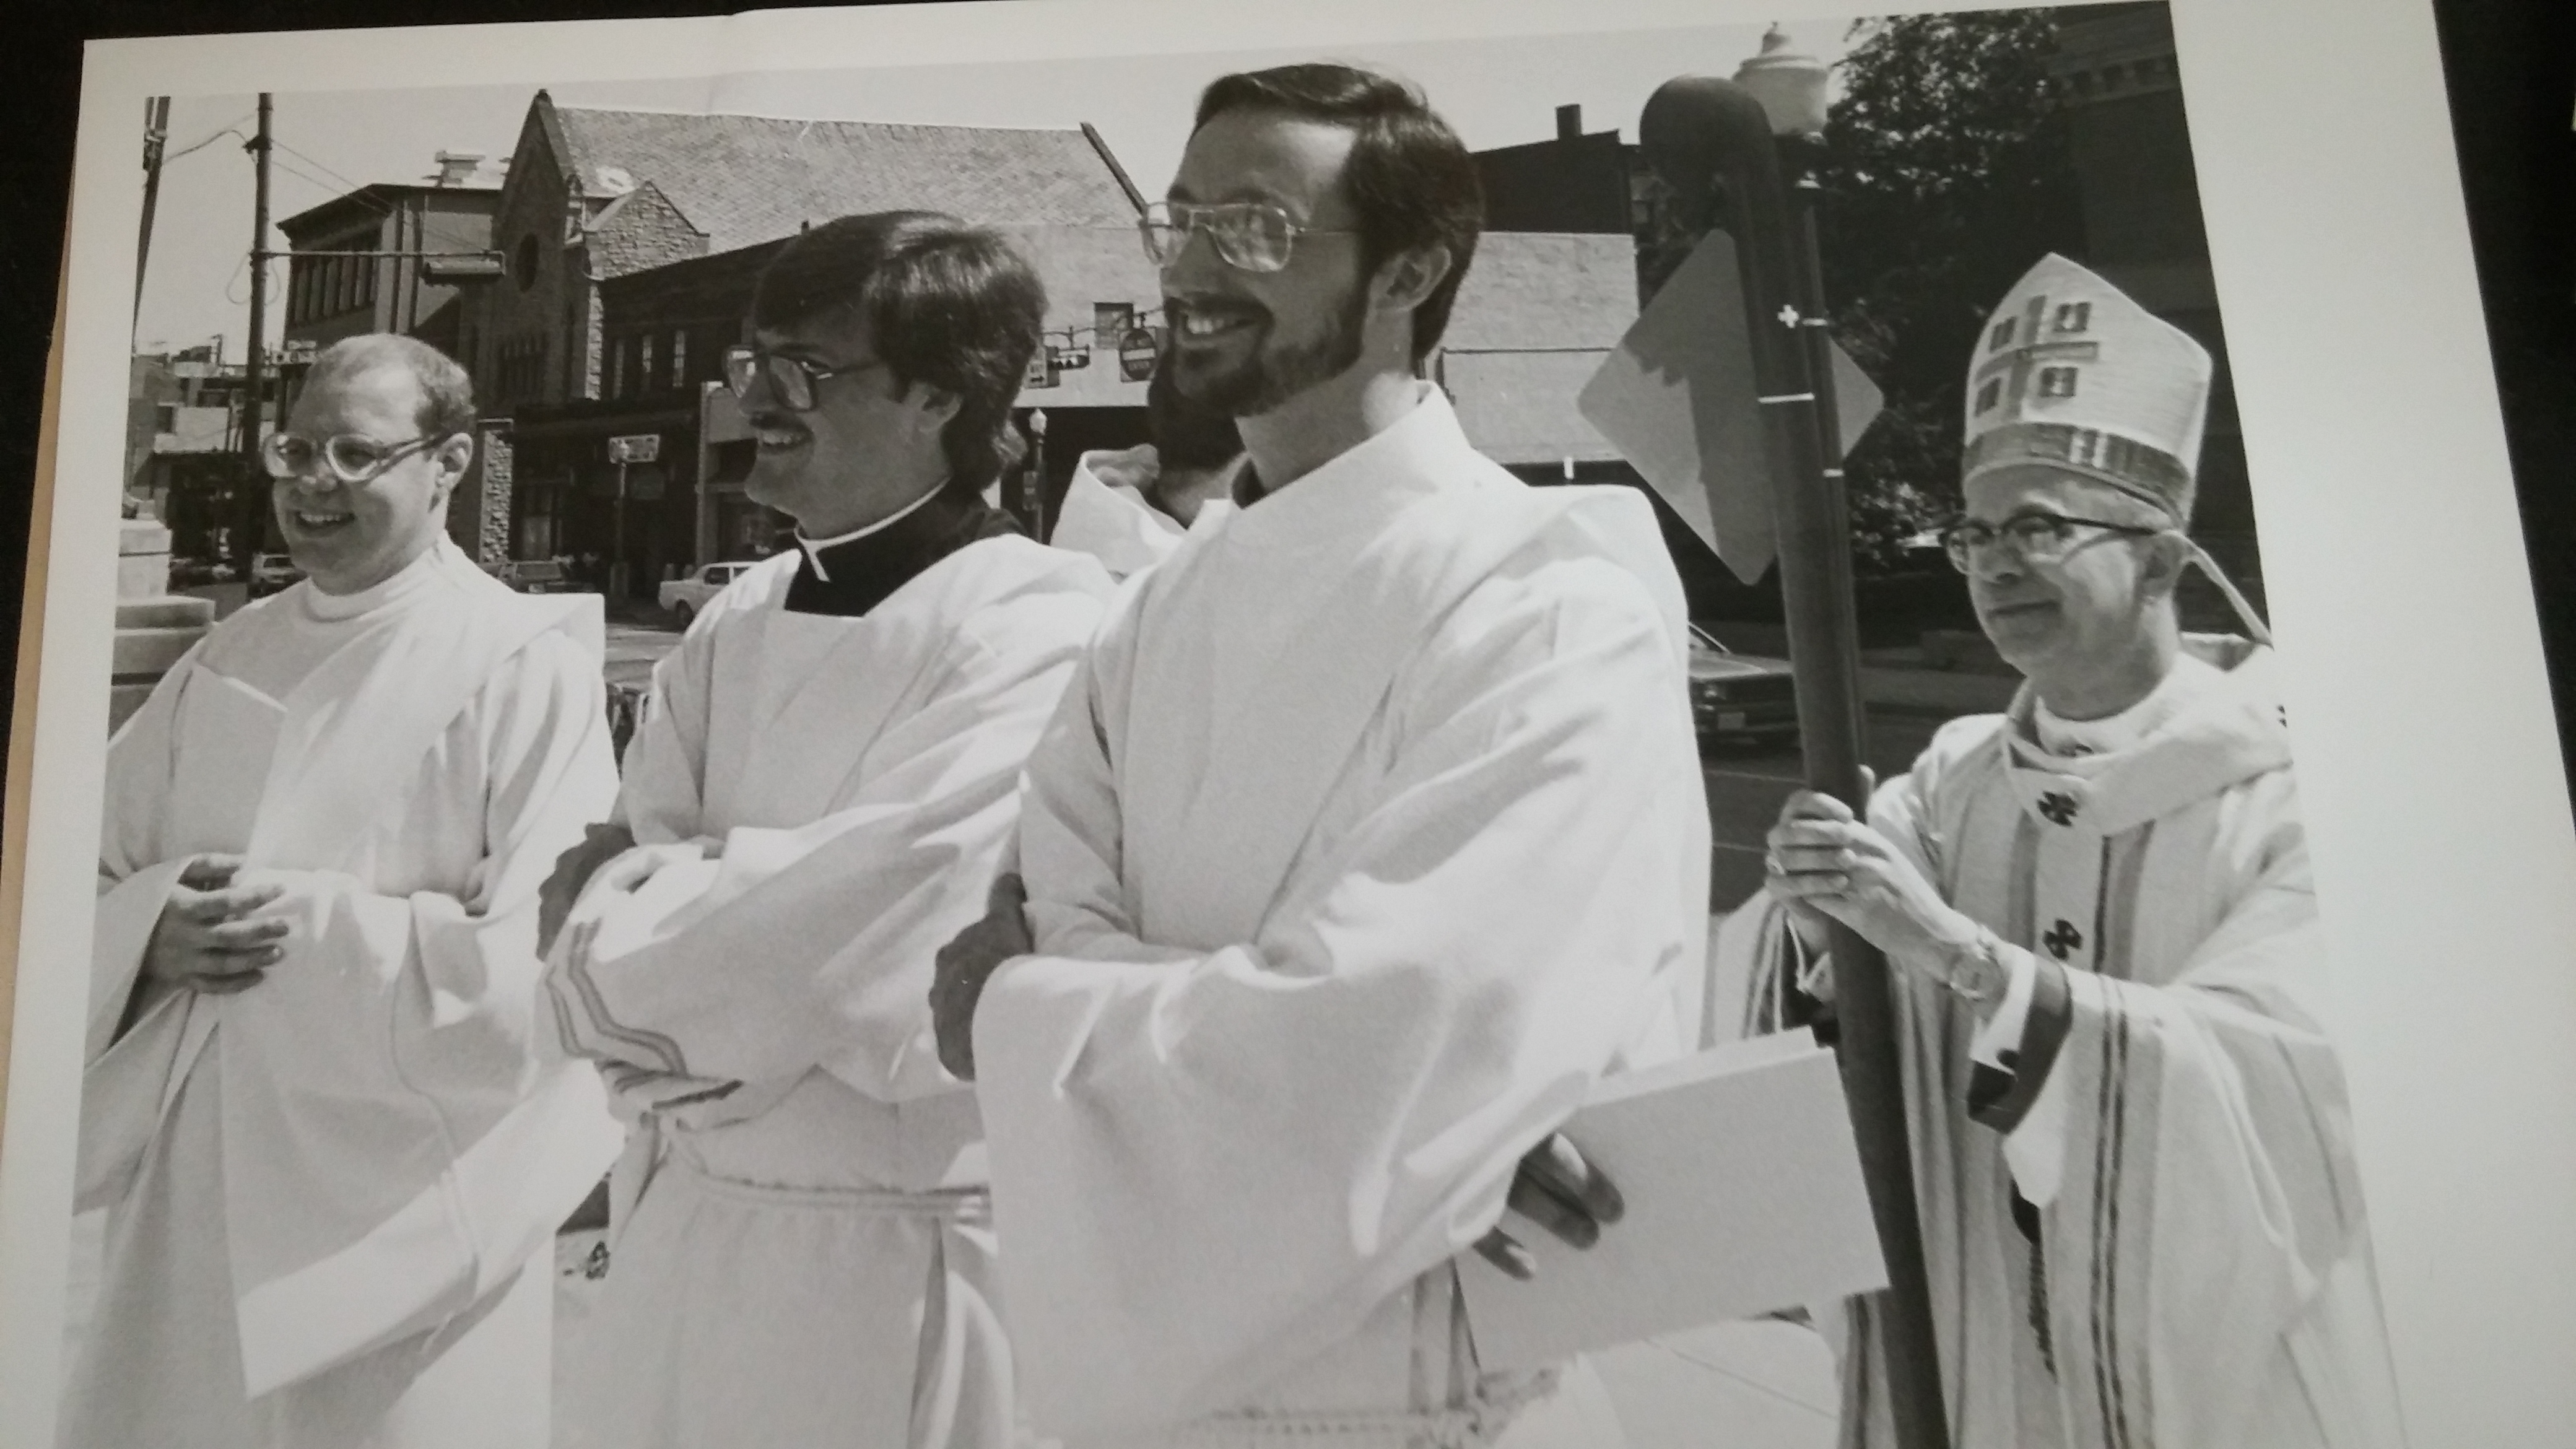 Deacons Jeffrey Silver, Steven Shoup, and Anthony Dattilo preparing for procession Ordination Day 1984